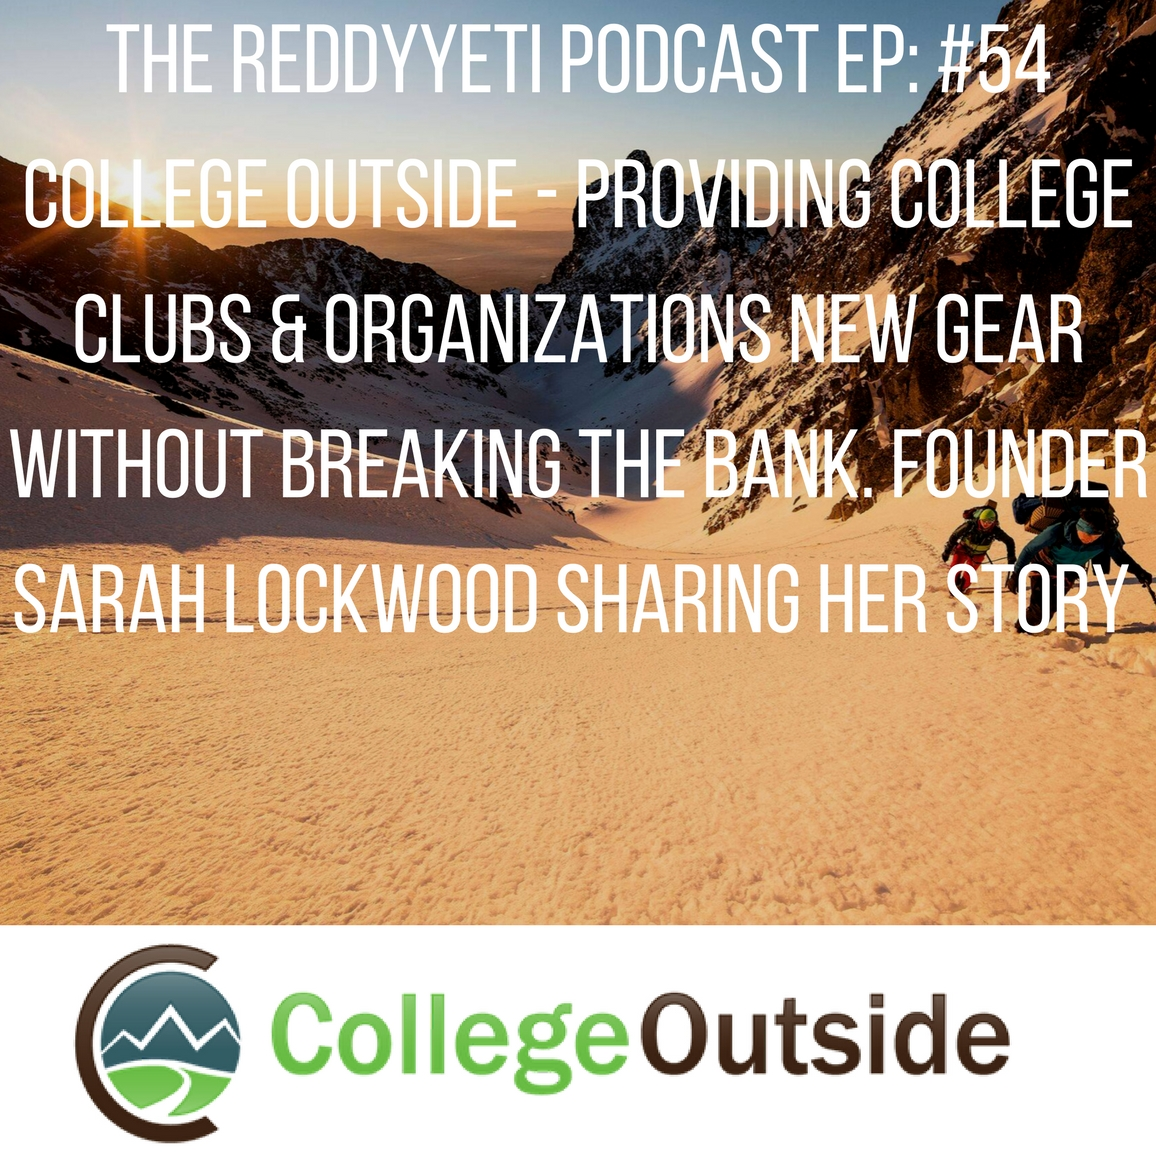 College Outside W Podcast image.jpg